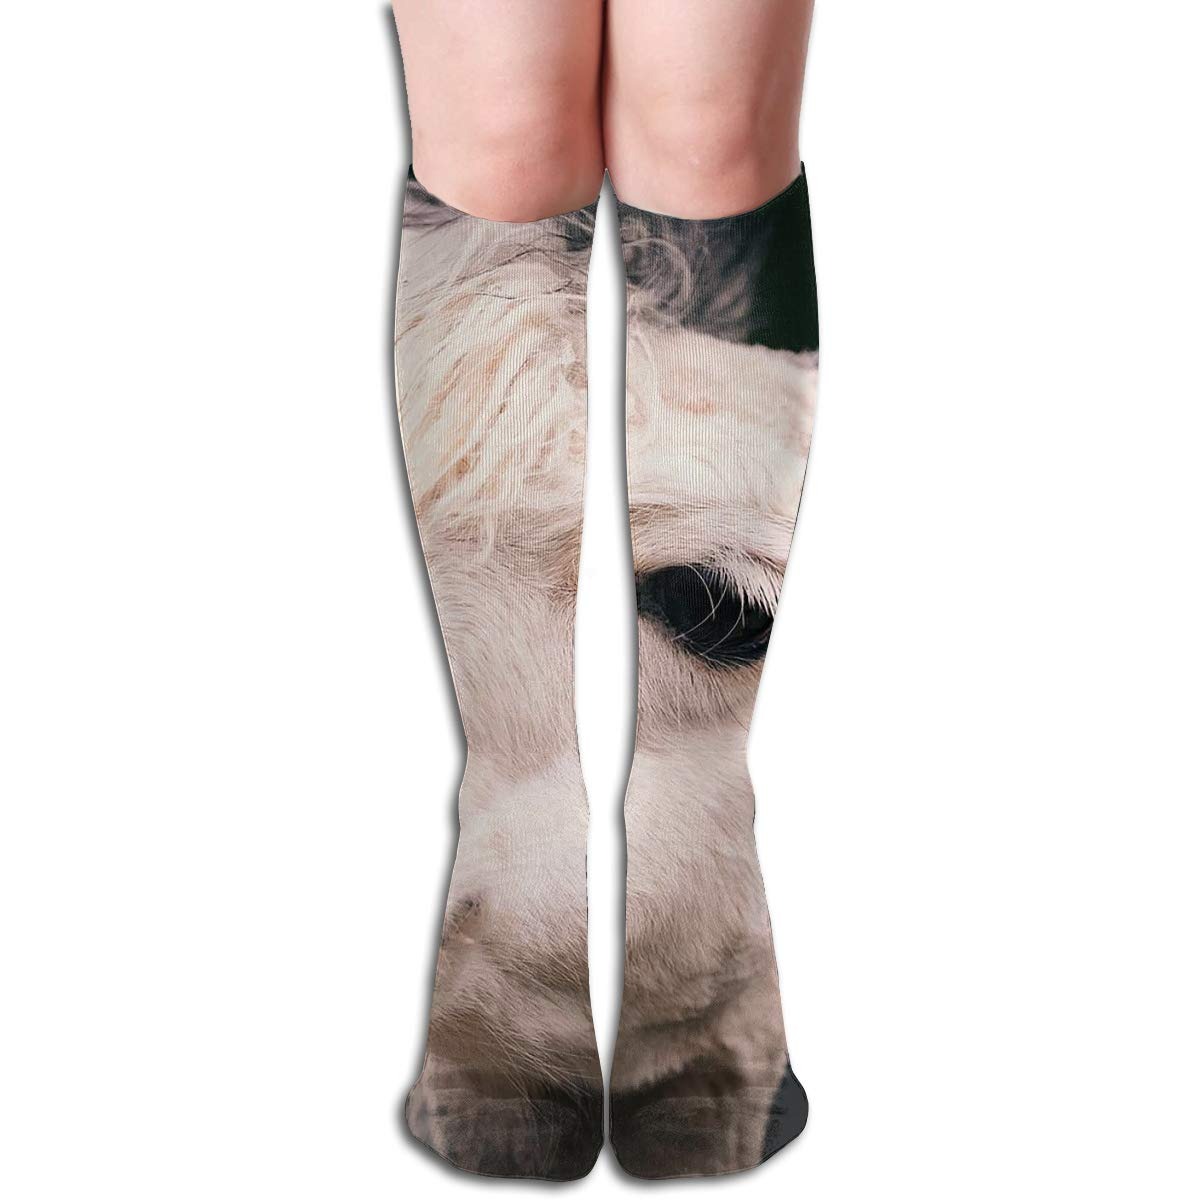 Amazon.com: Bandnae 19.68 Inch Compression Socks Animals ...